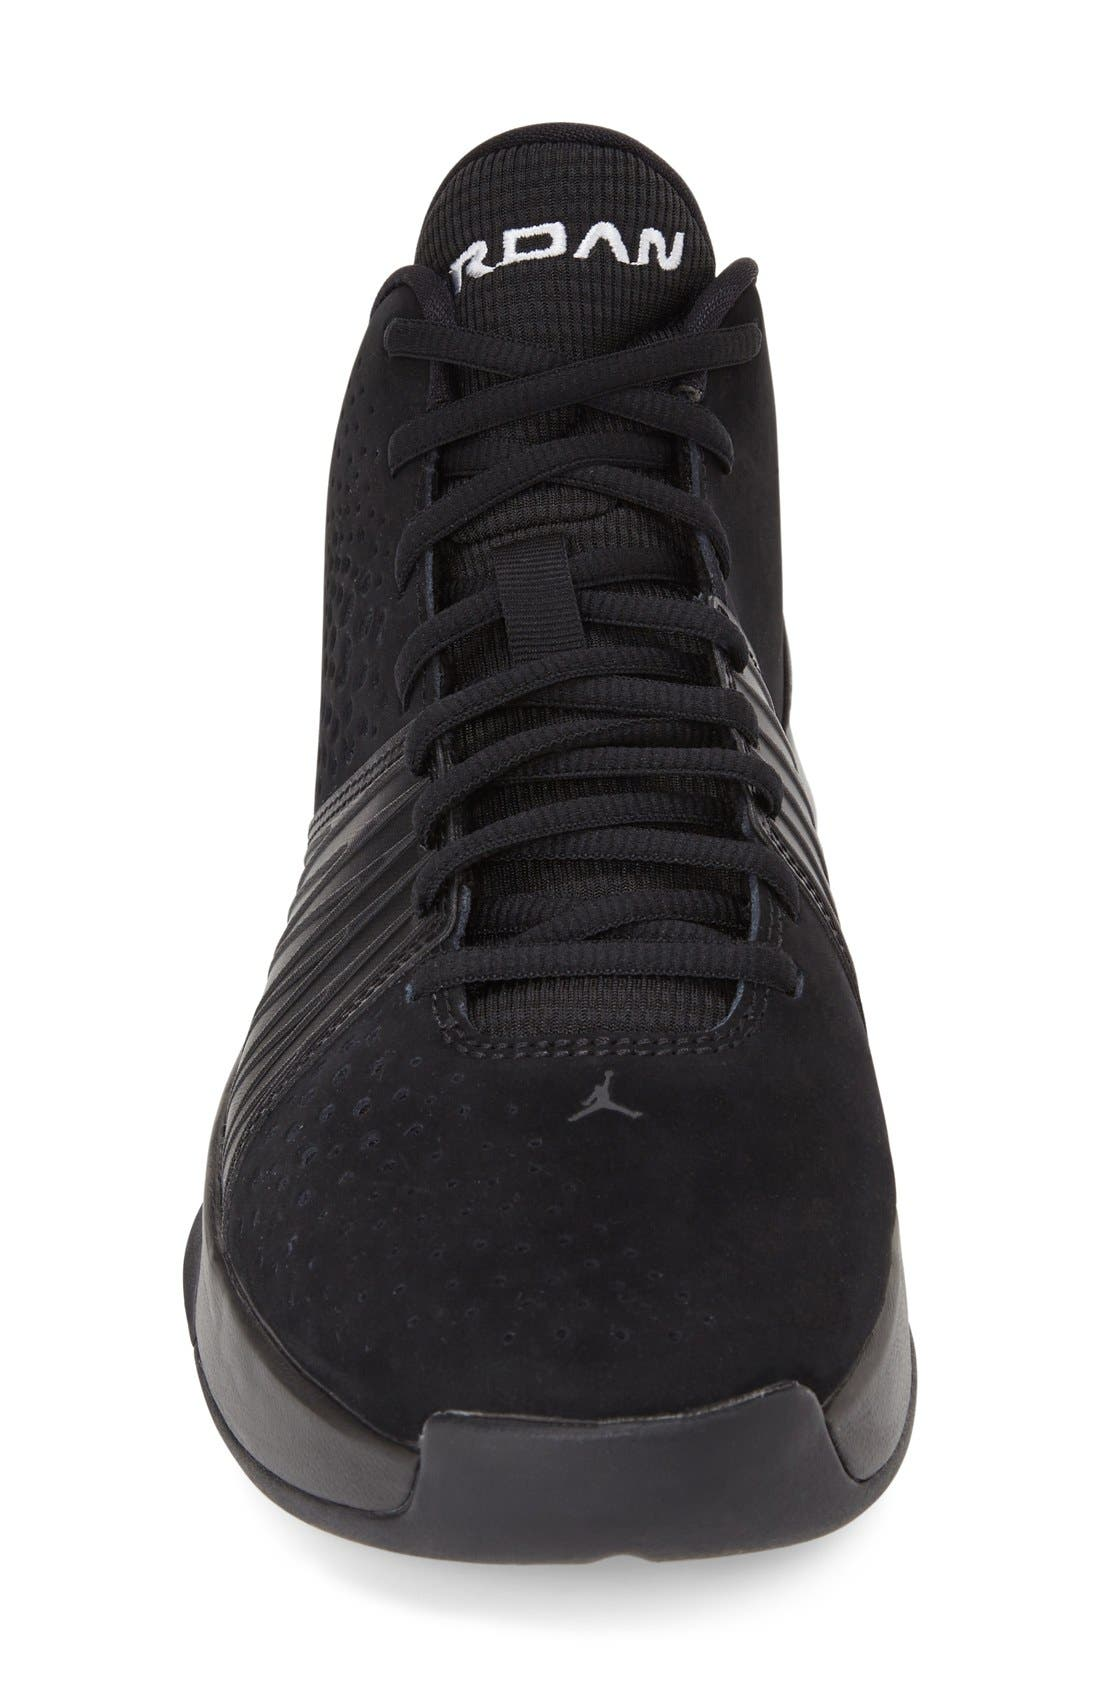 NIKE,                             'Air Jordan 5AM' Training Shoe,                             Alternate thumbnail 3, color,                             010